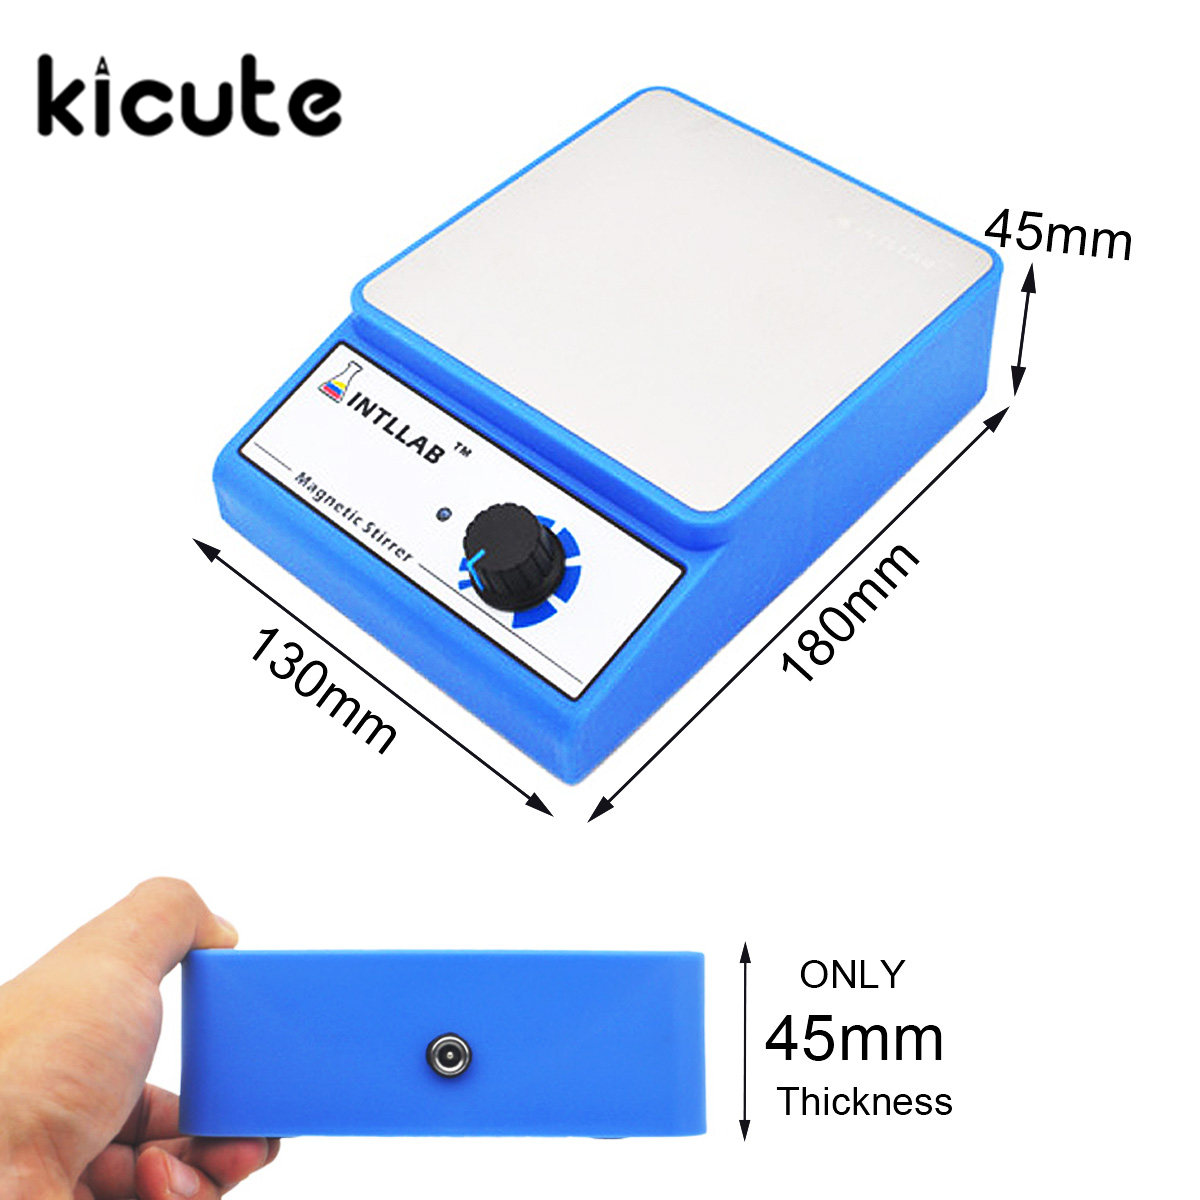 KiCute New Magnetic Stirrer Home Laboratory Magnetic Mixer Stirrers Apparatus AC100-240V Laboratory Chemistry Magnetic Stirrer brand new flatspin small magnetic stirrer thin laboratory mixer adjustable speed 15 1500 rpm